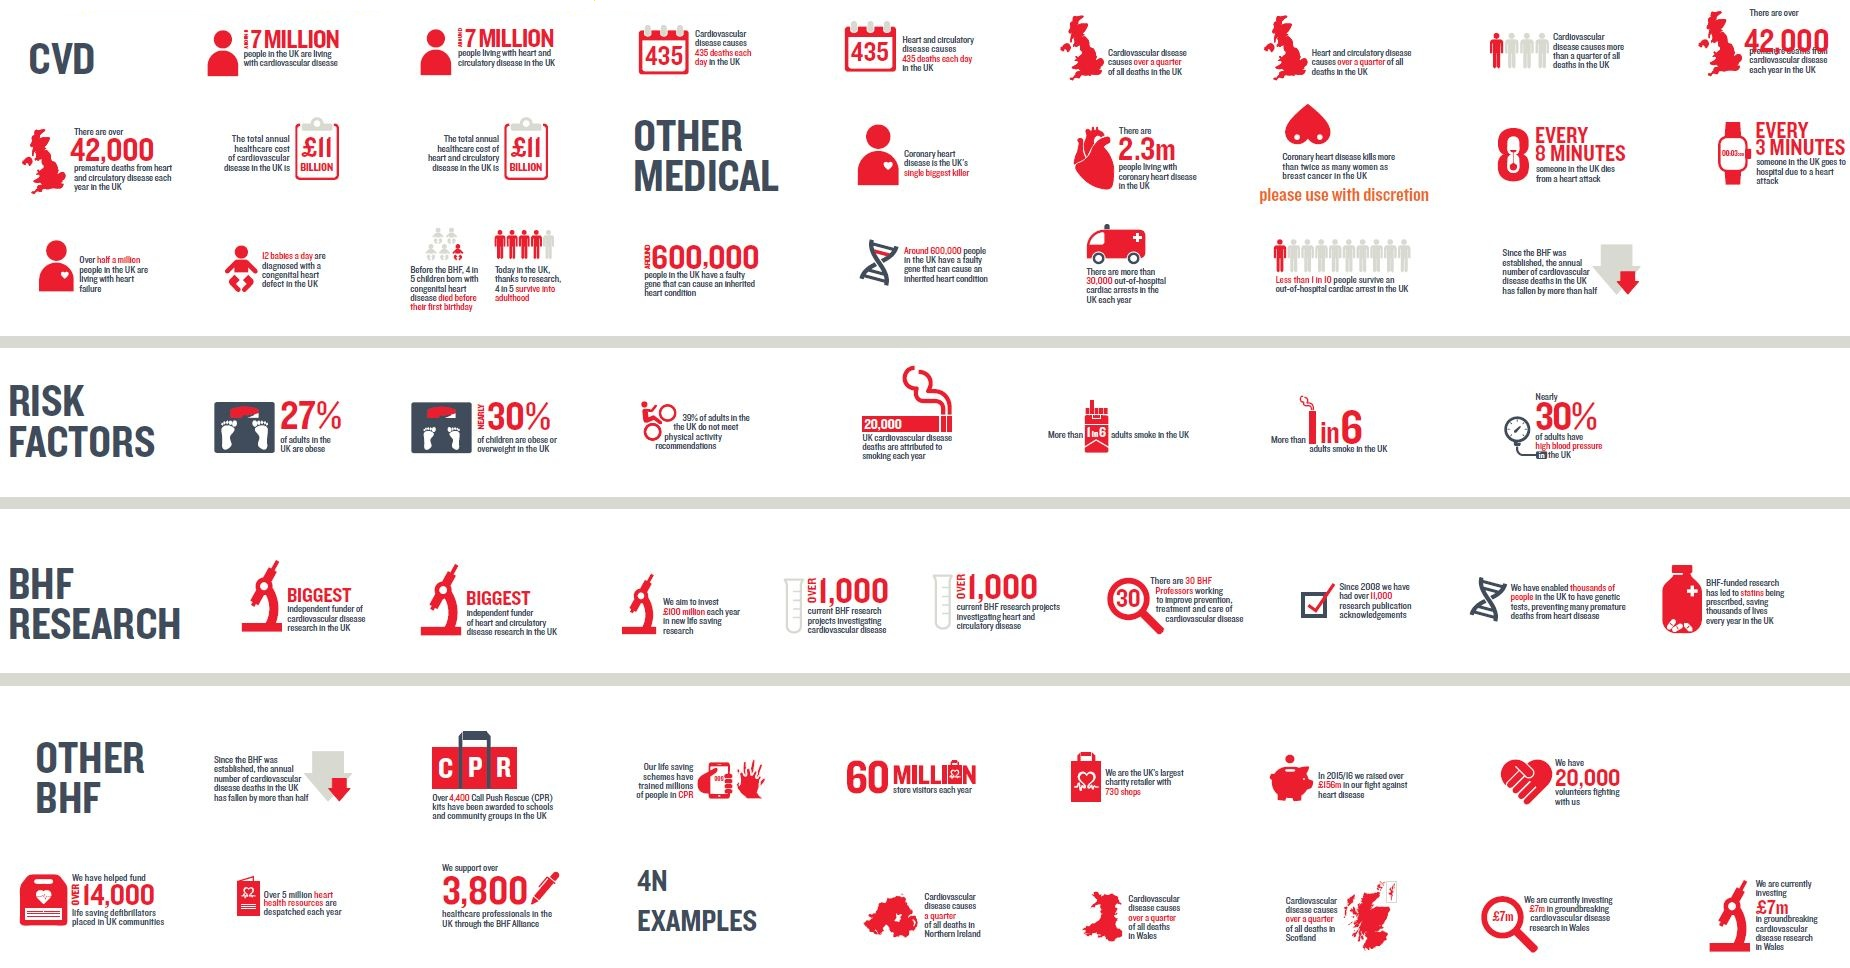 British Heart Foundation Infographic of Statistics